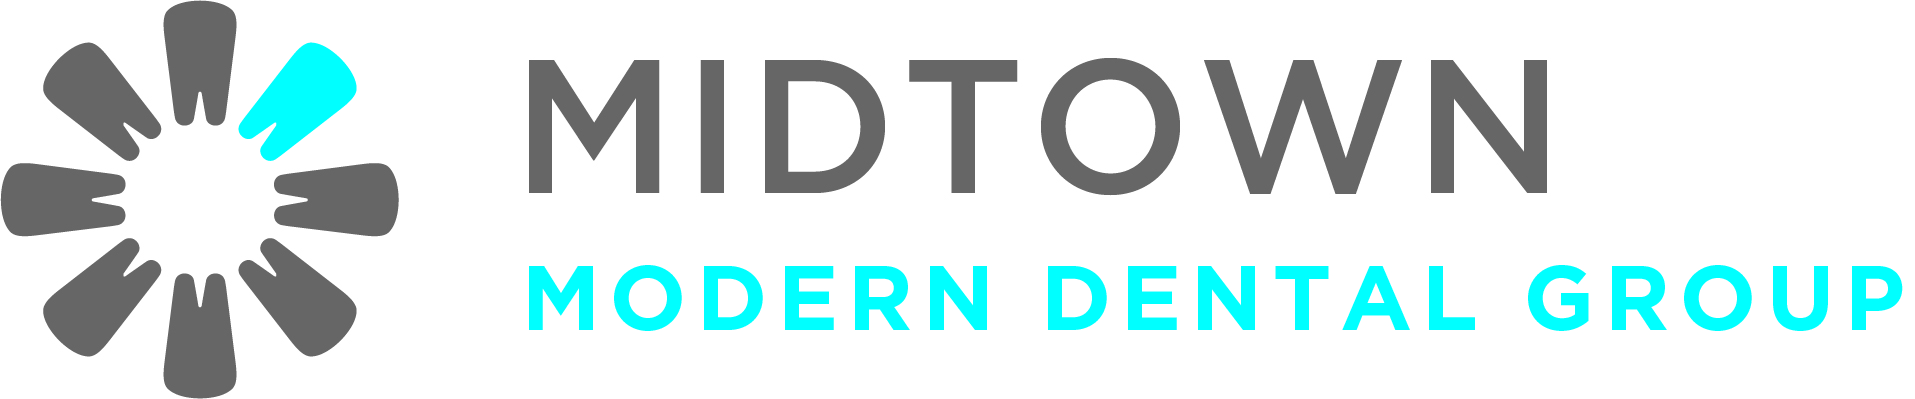 Midtown Modern Dental Group